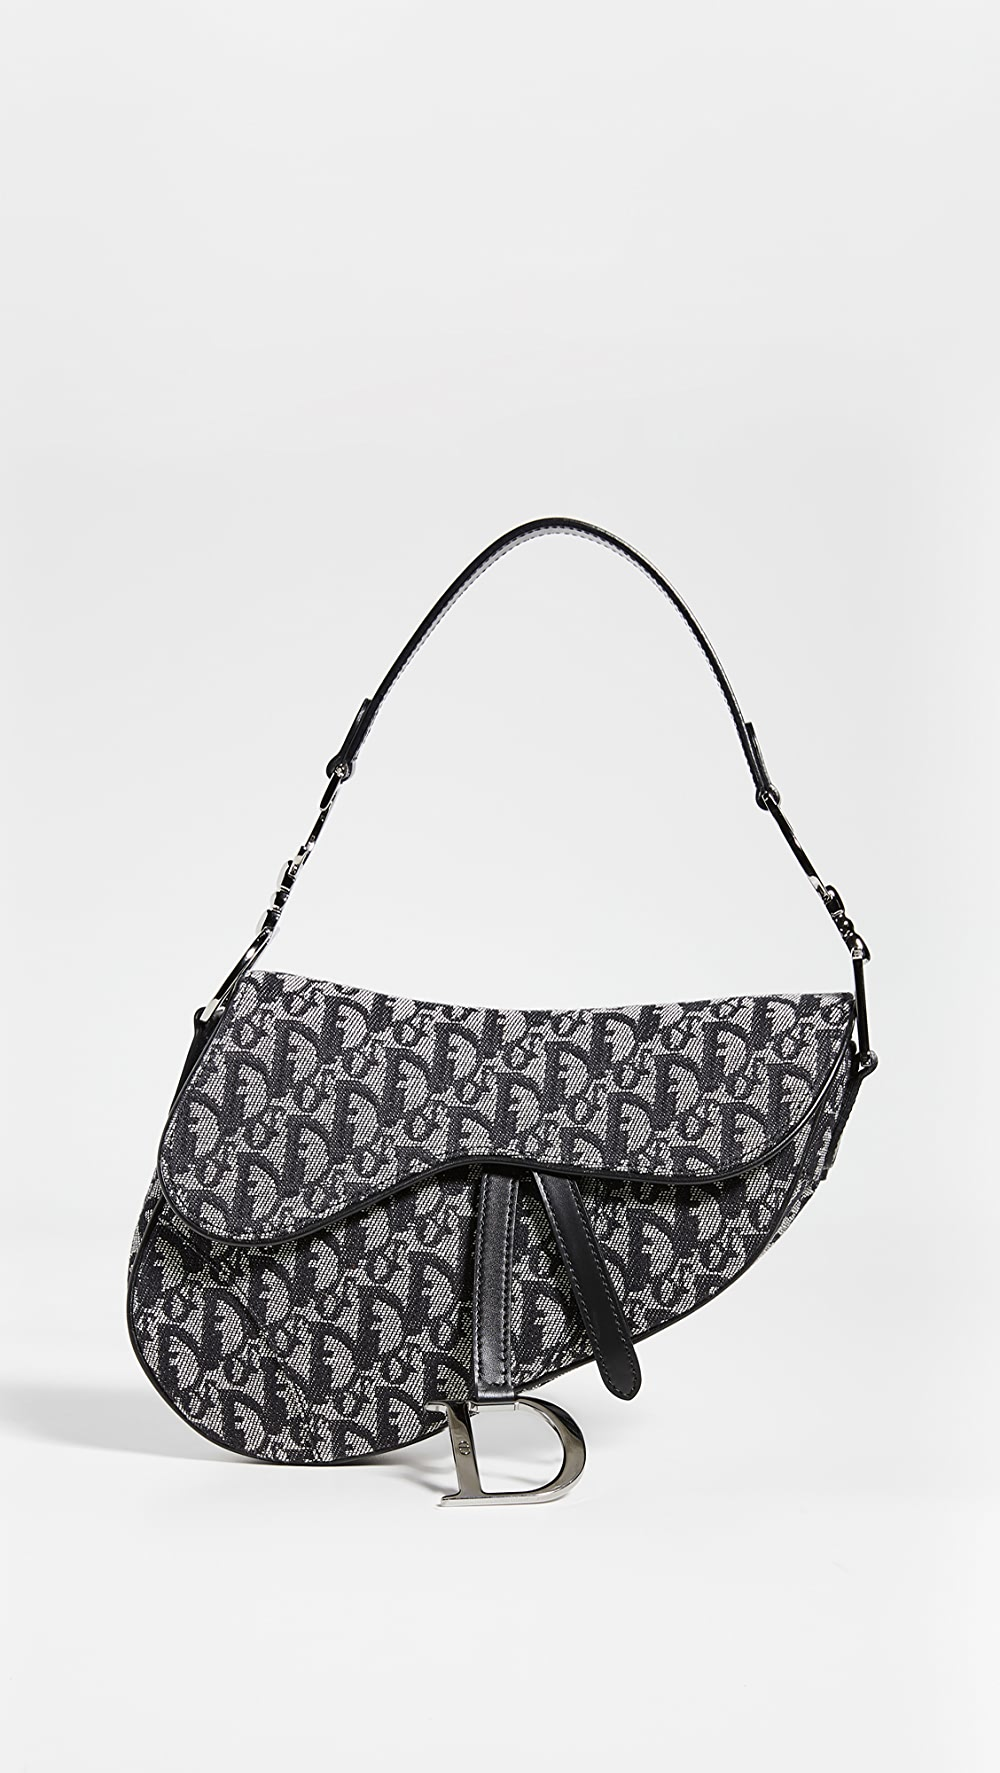 New Fashion What Goes Around Comes Around - Dior Canvas Saddle Bag Be Friendly In Use